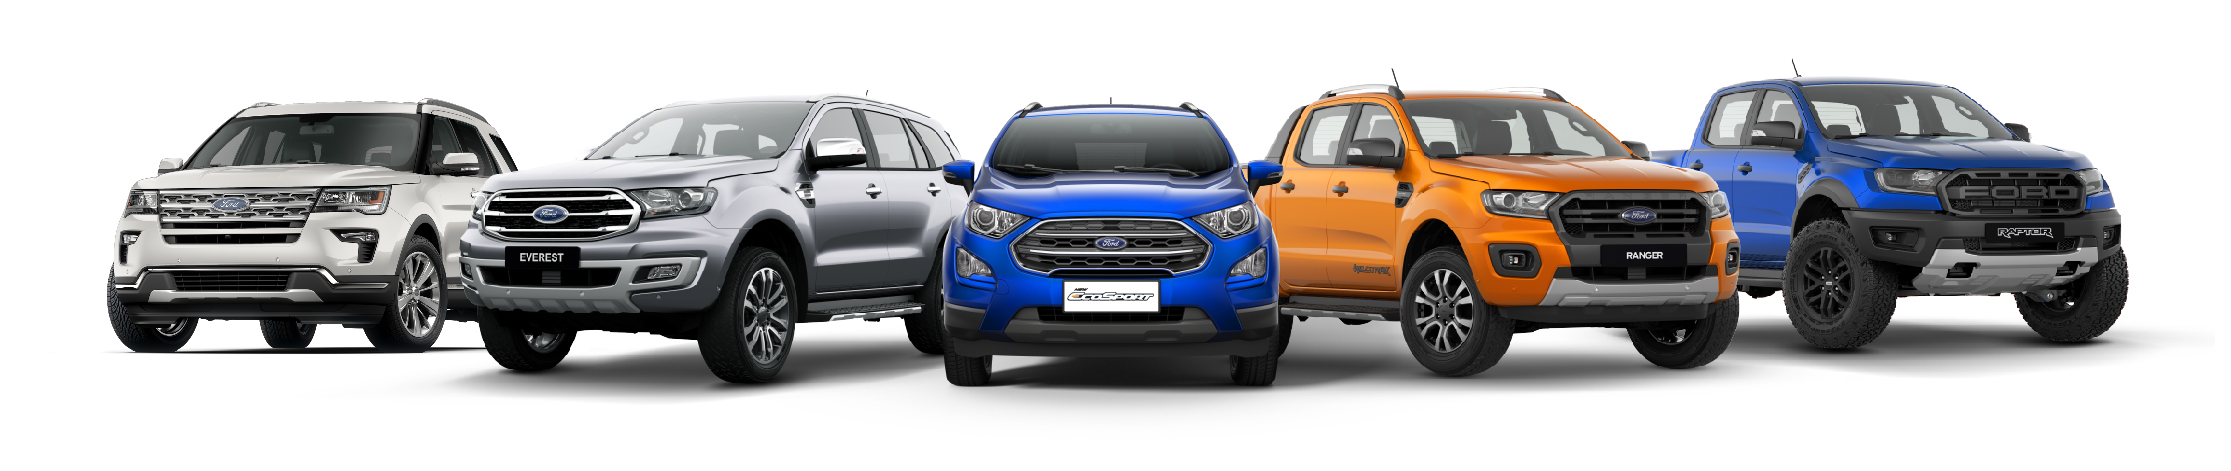 Ford Cambodia – Official Ford Cambodia Website